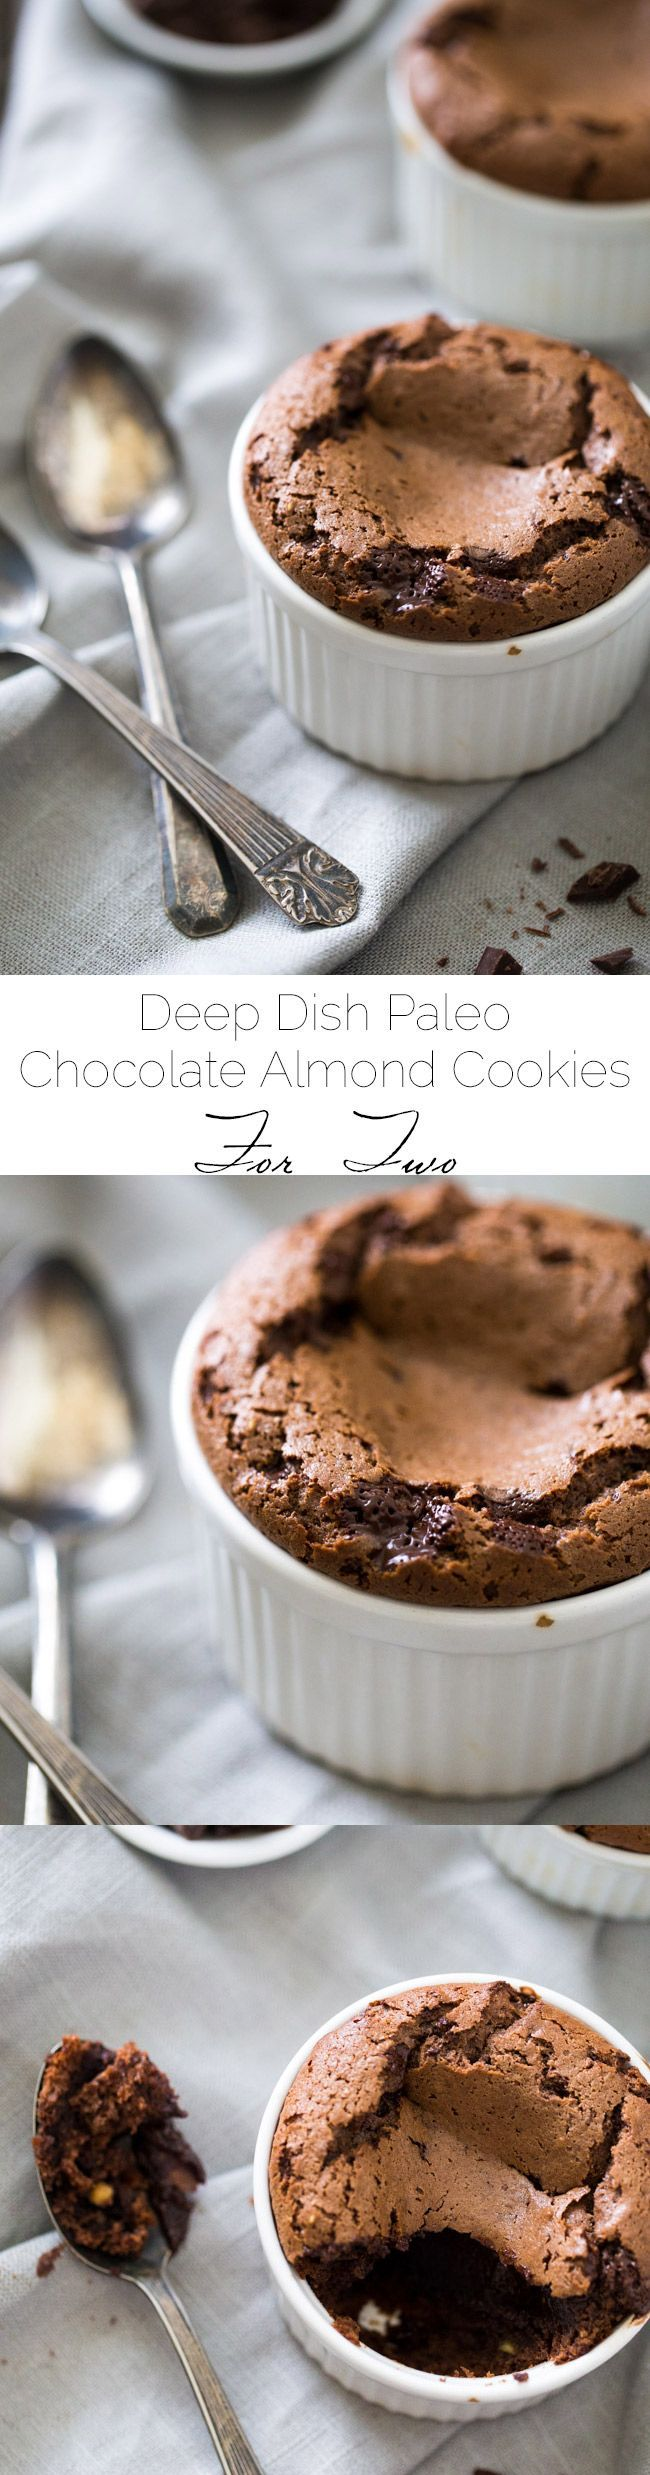 Deep Dish Paleo Chocolate Chip Cookies for 2 - Ready in under 25 minutes, and SO rich and HEALTHY. You'll LOVE these! | Foodfaithfitness.com | @FoodFaithFit